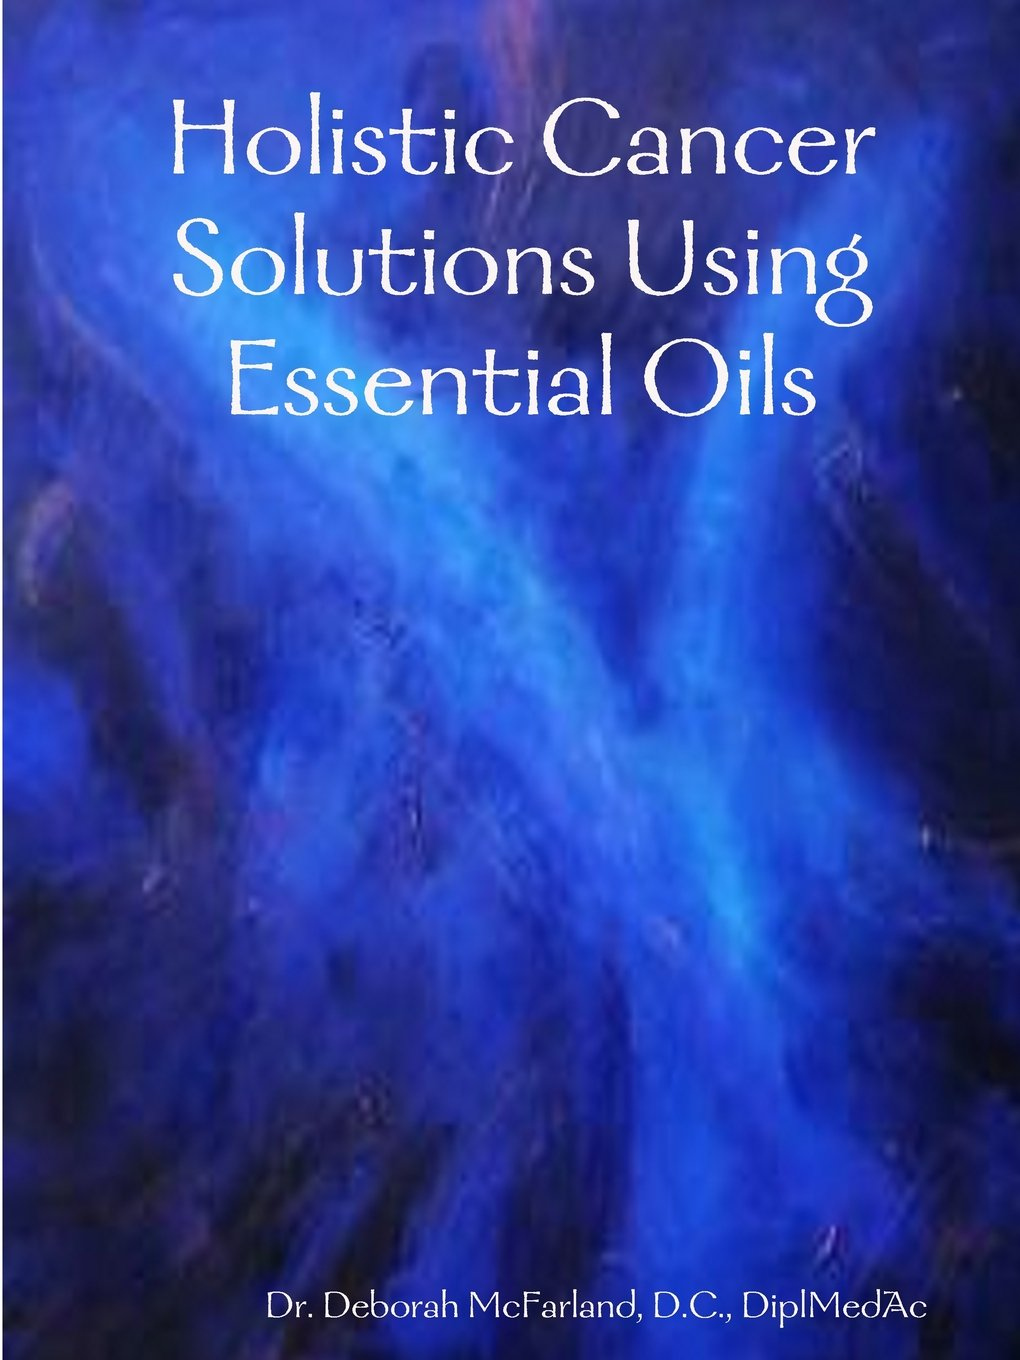 Download Holistic Cancer Solutions Using Essential Oils PDF